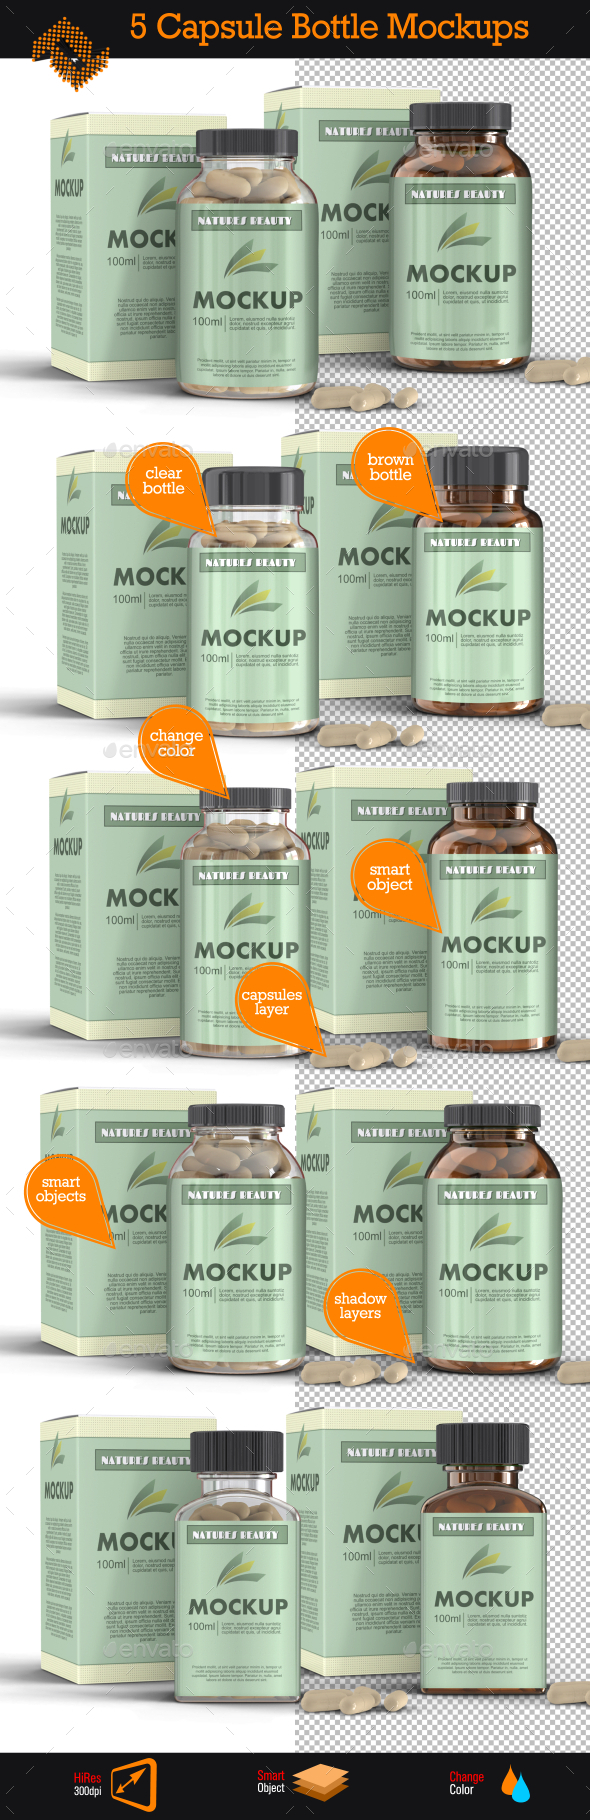 5 Supplement Capsule Bottle Mockups - Packaging Product Mock-Ups